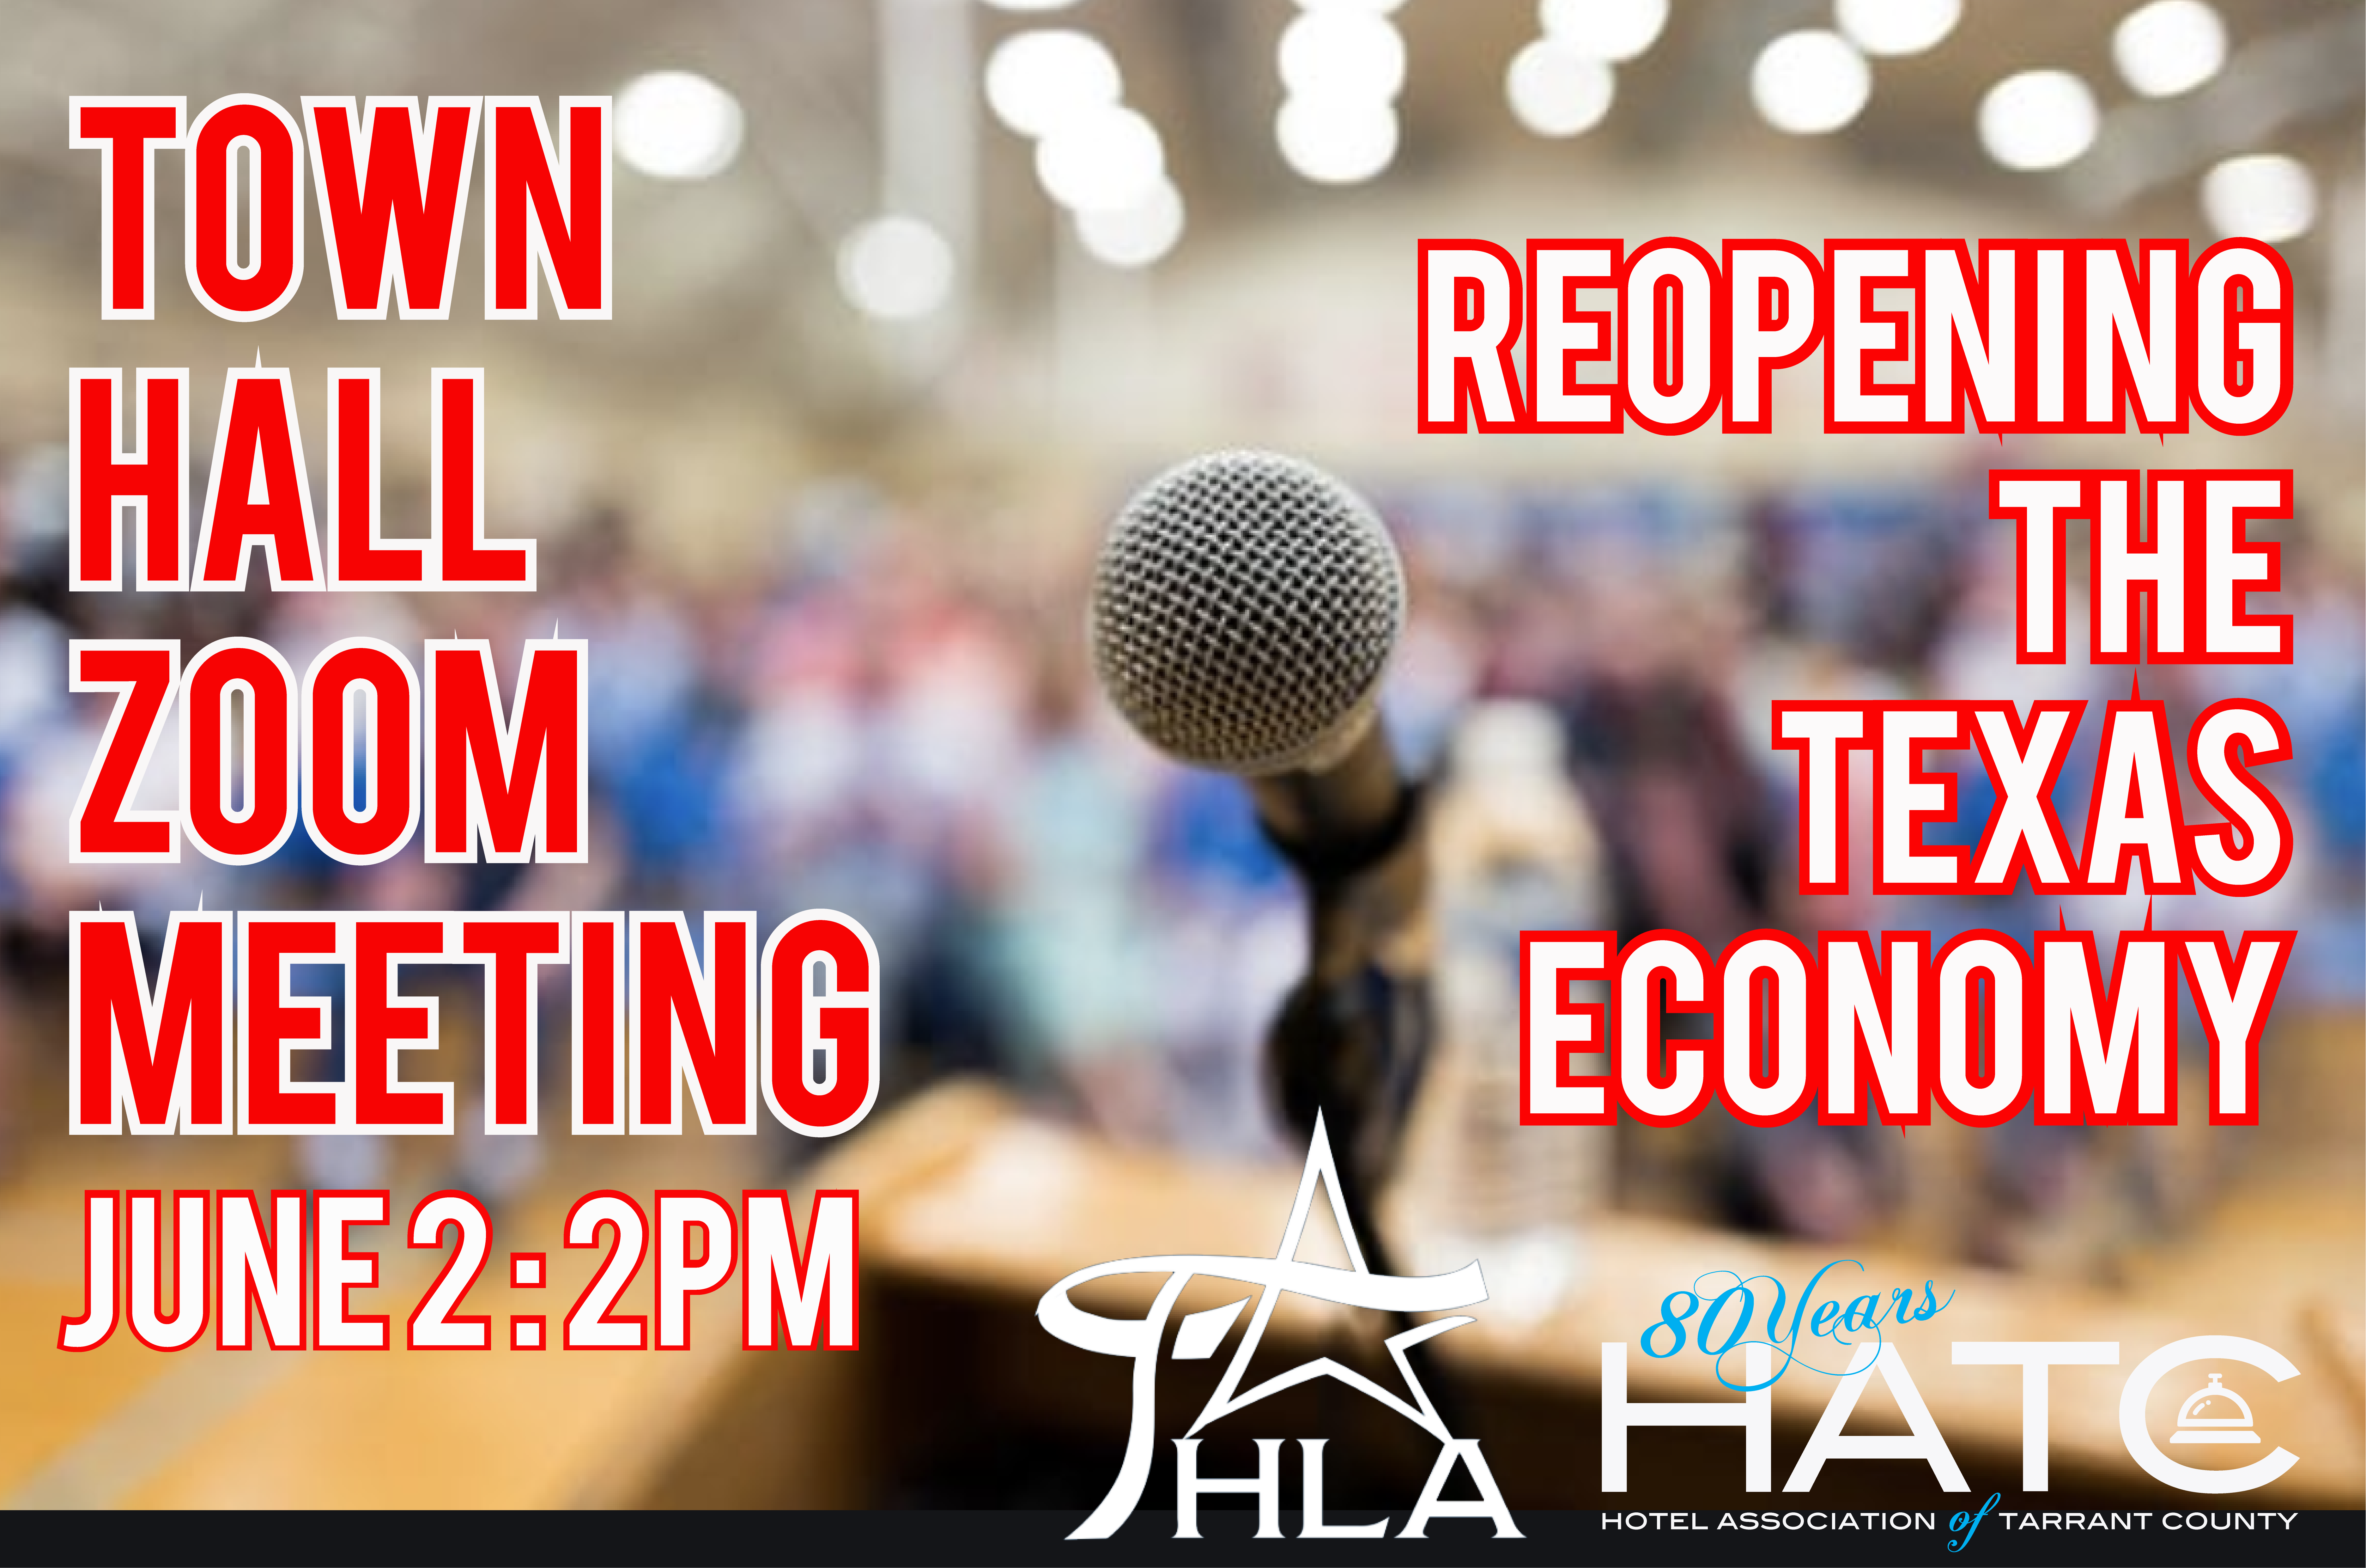 June Webinar ReOpening the Texas Economy